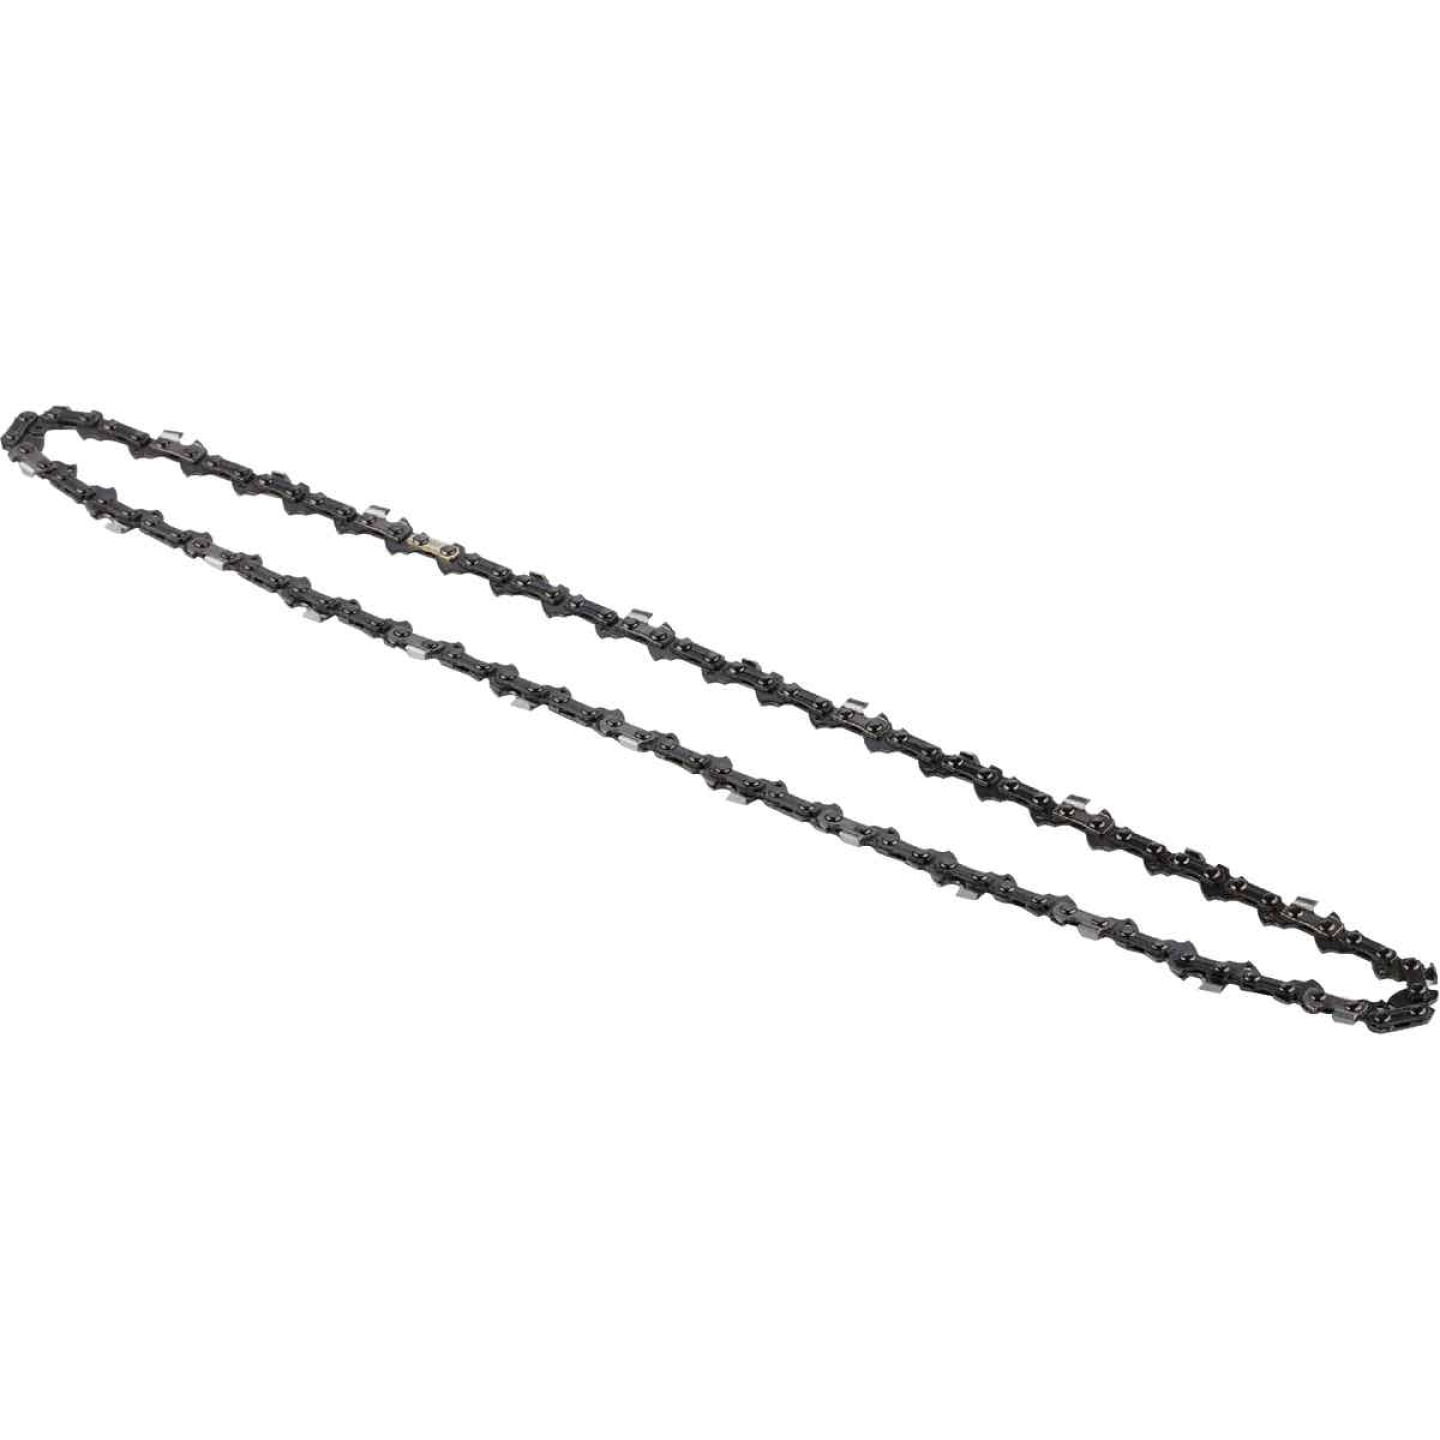 Oregon AdvanceCut S53 14 In. Chainsaw Chain Image 4